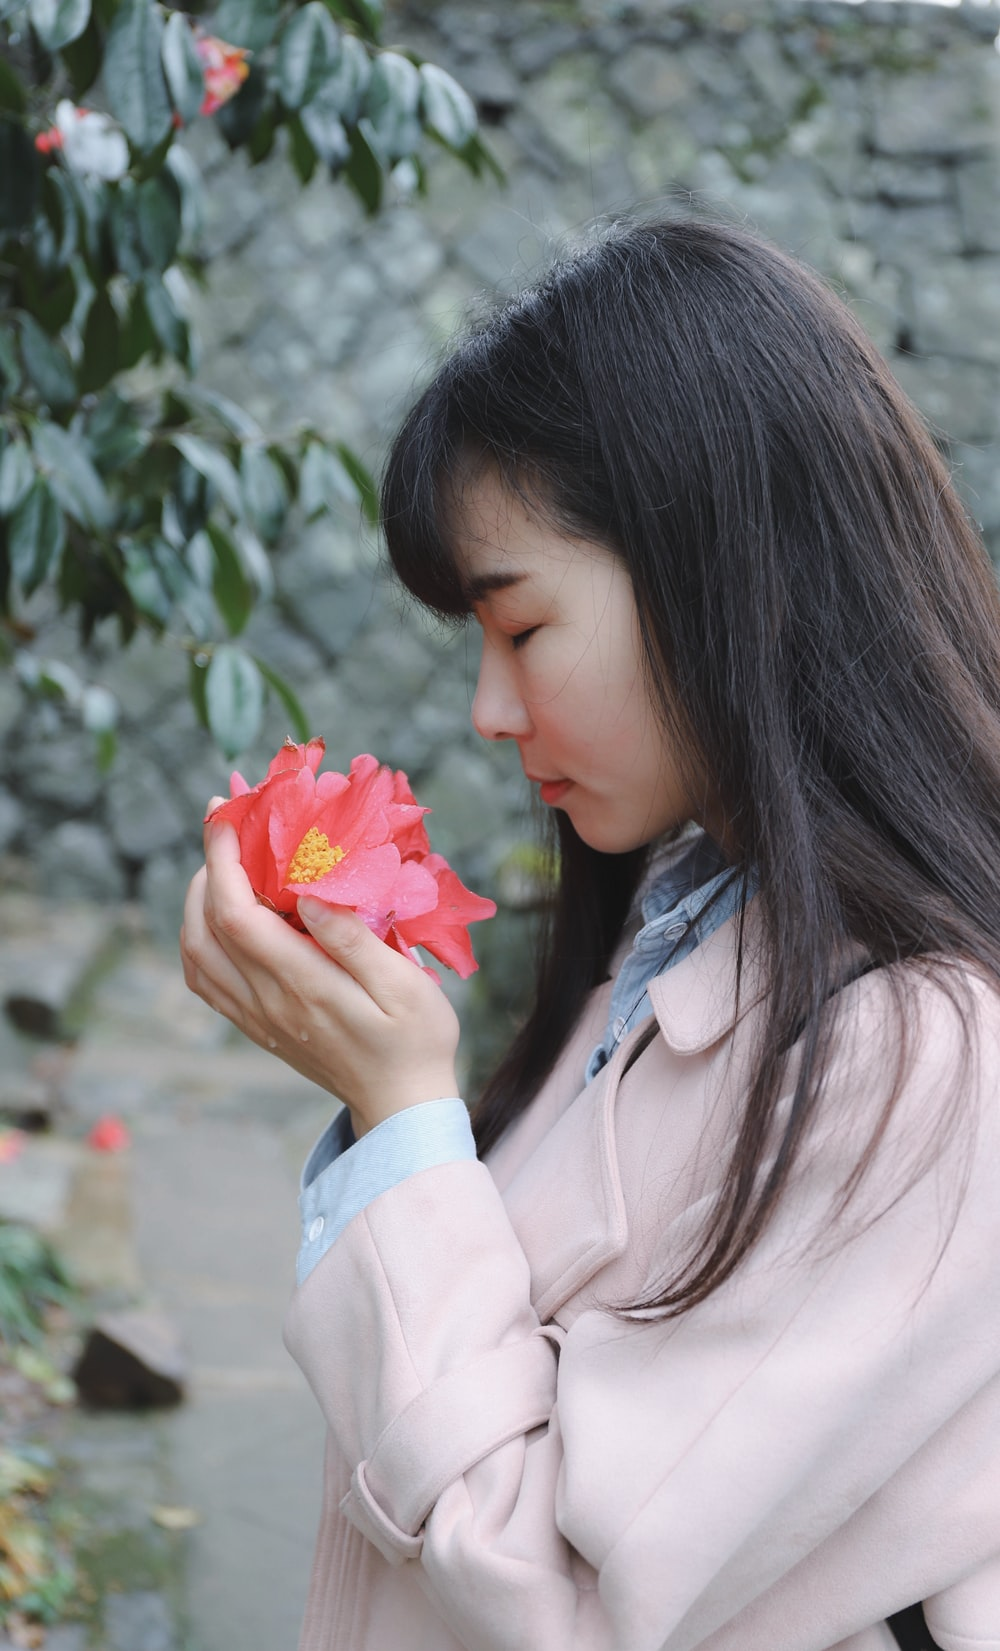 woman sniffing flower on her hands